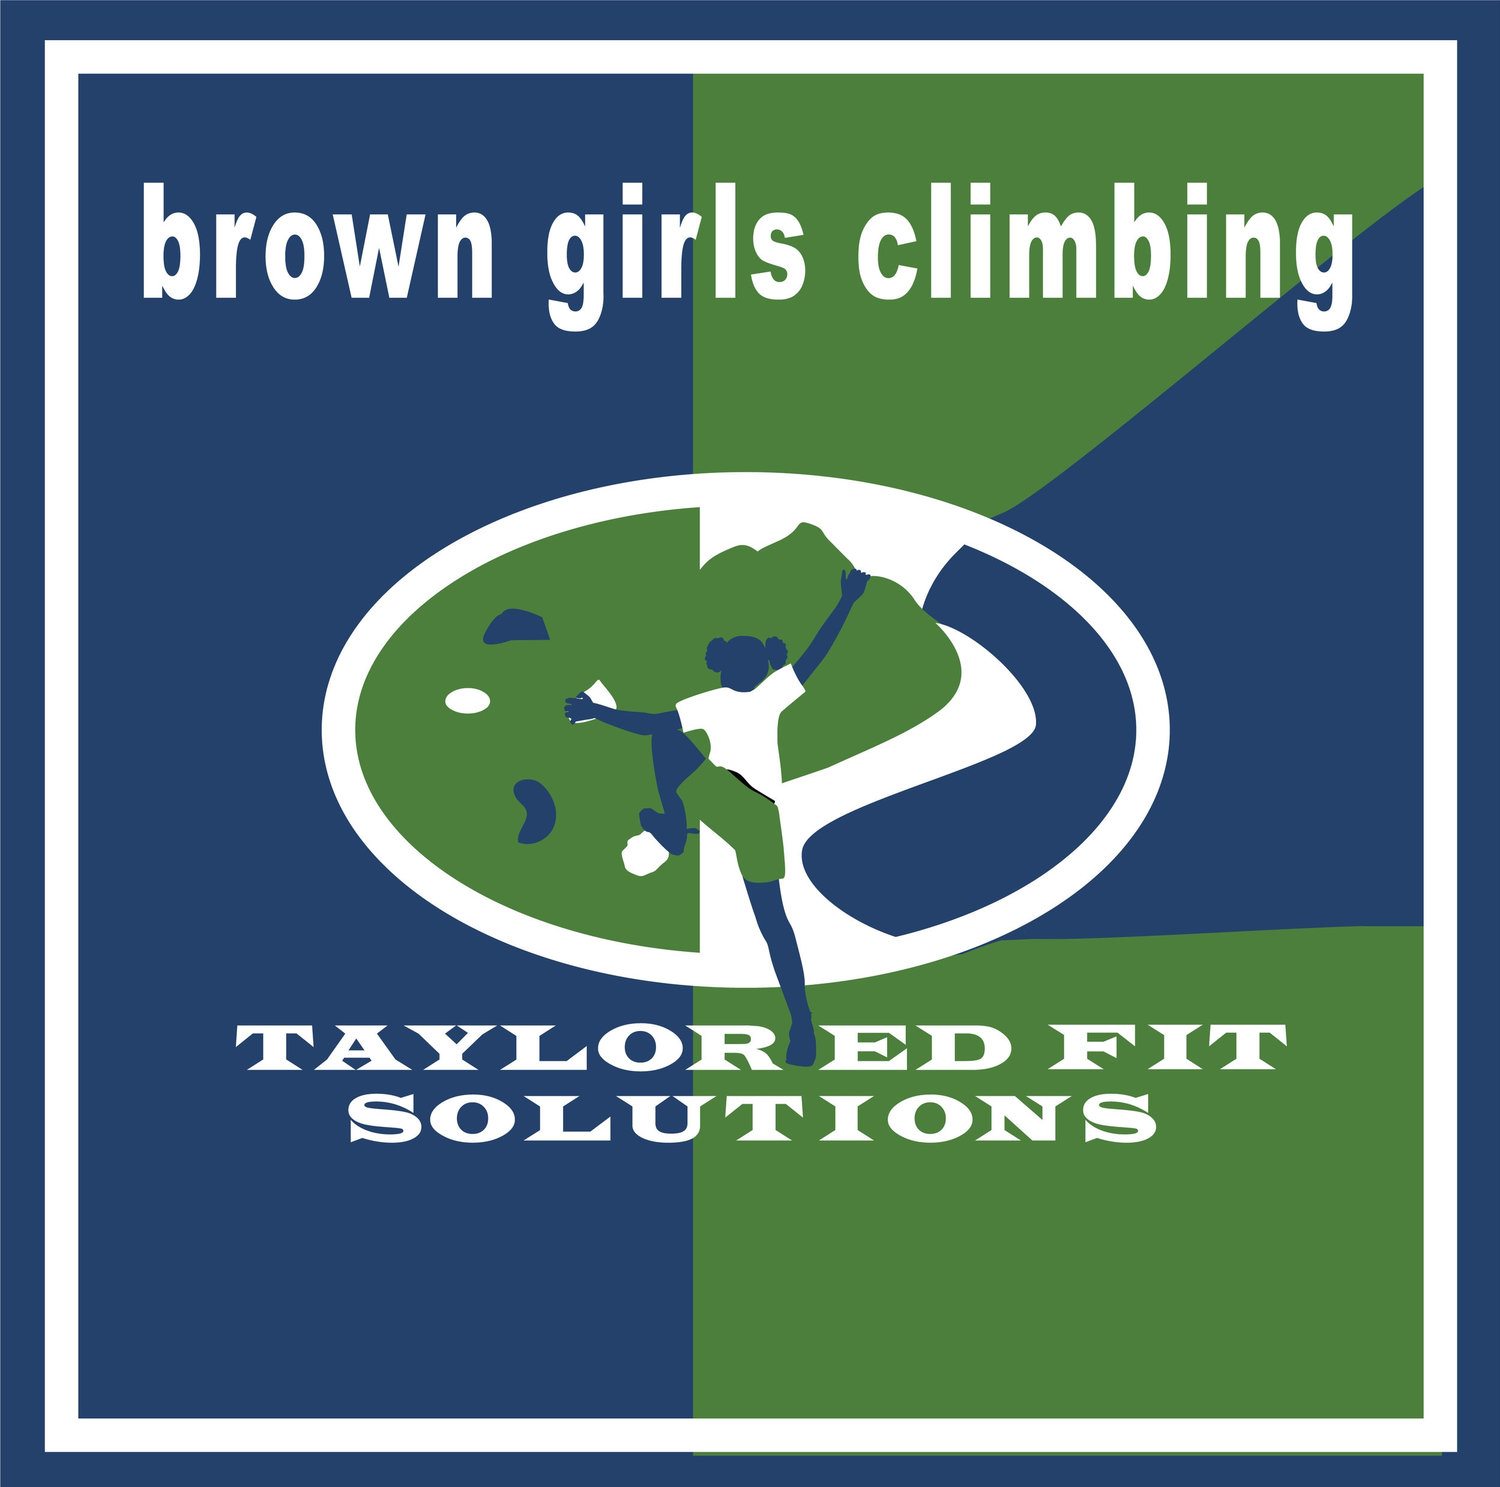 TAYLORED FIT SOLUTIONS